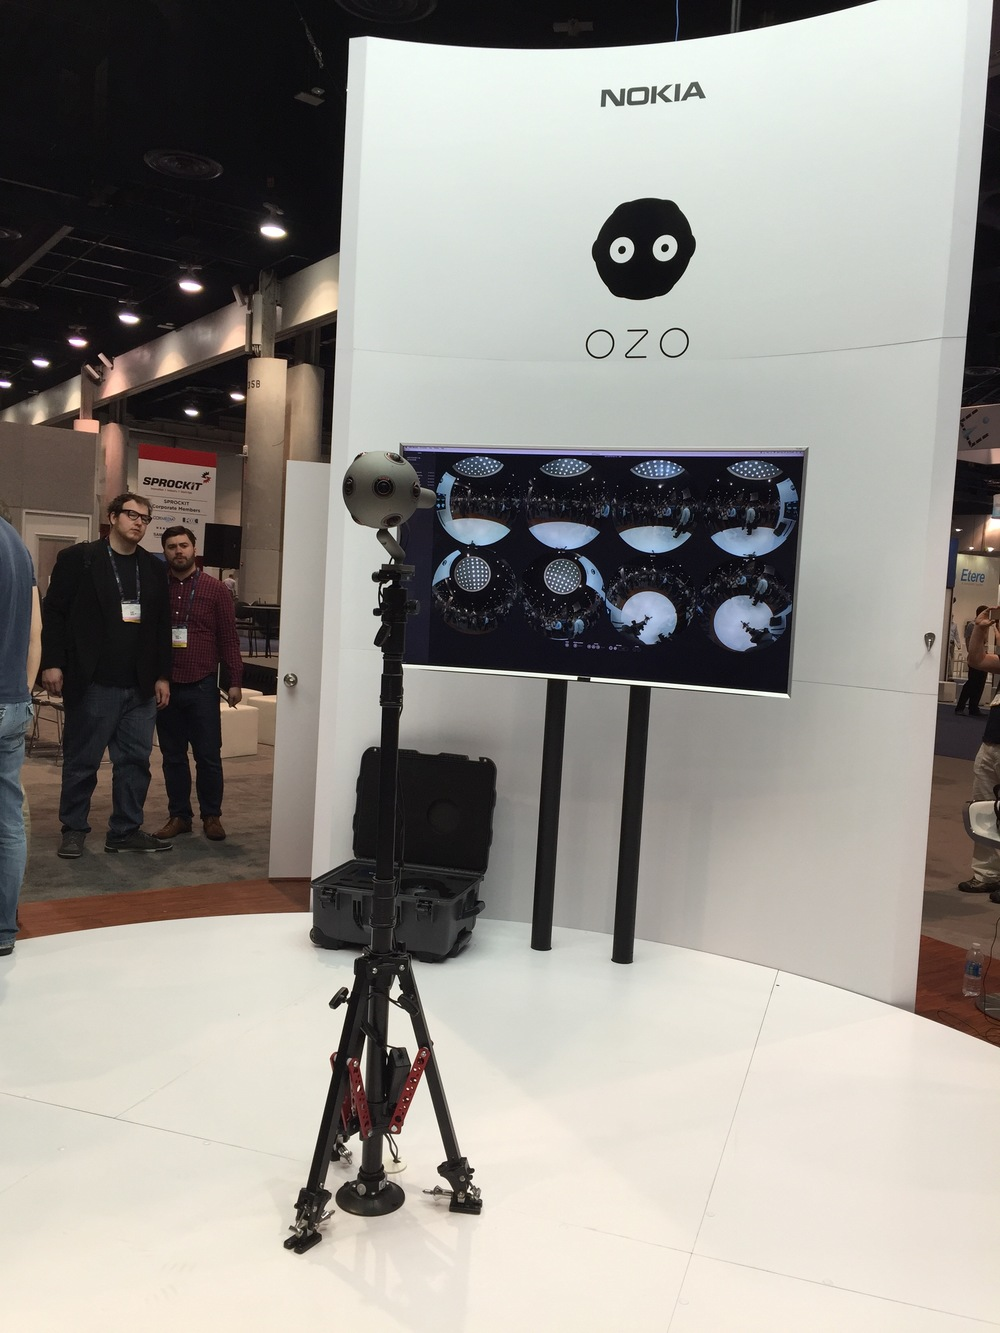 Nokia's OZO 360 VR camera with 360 sound recording capabilities.